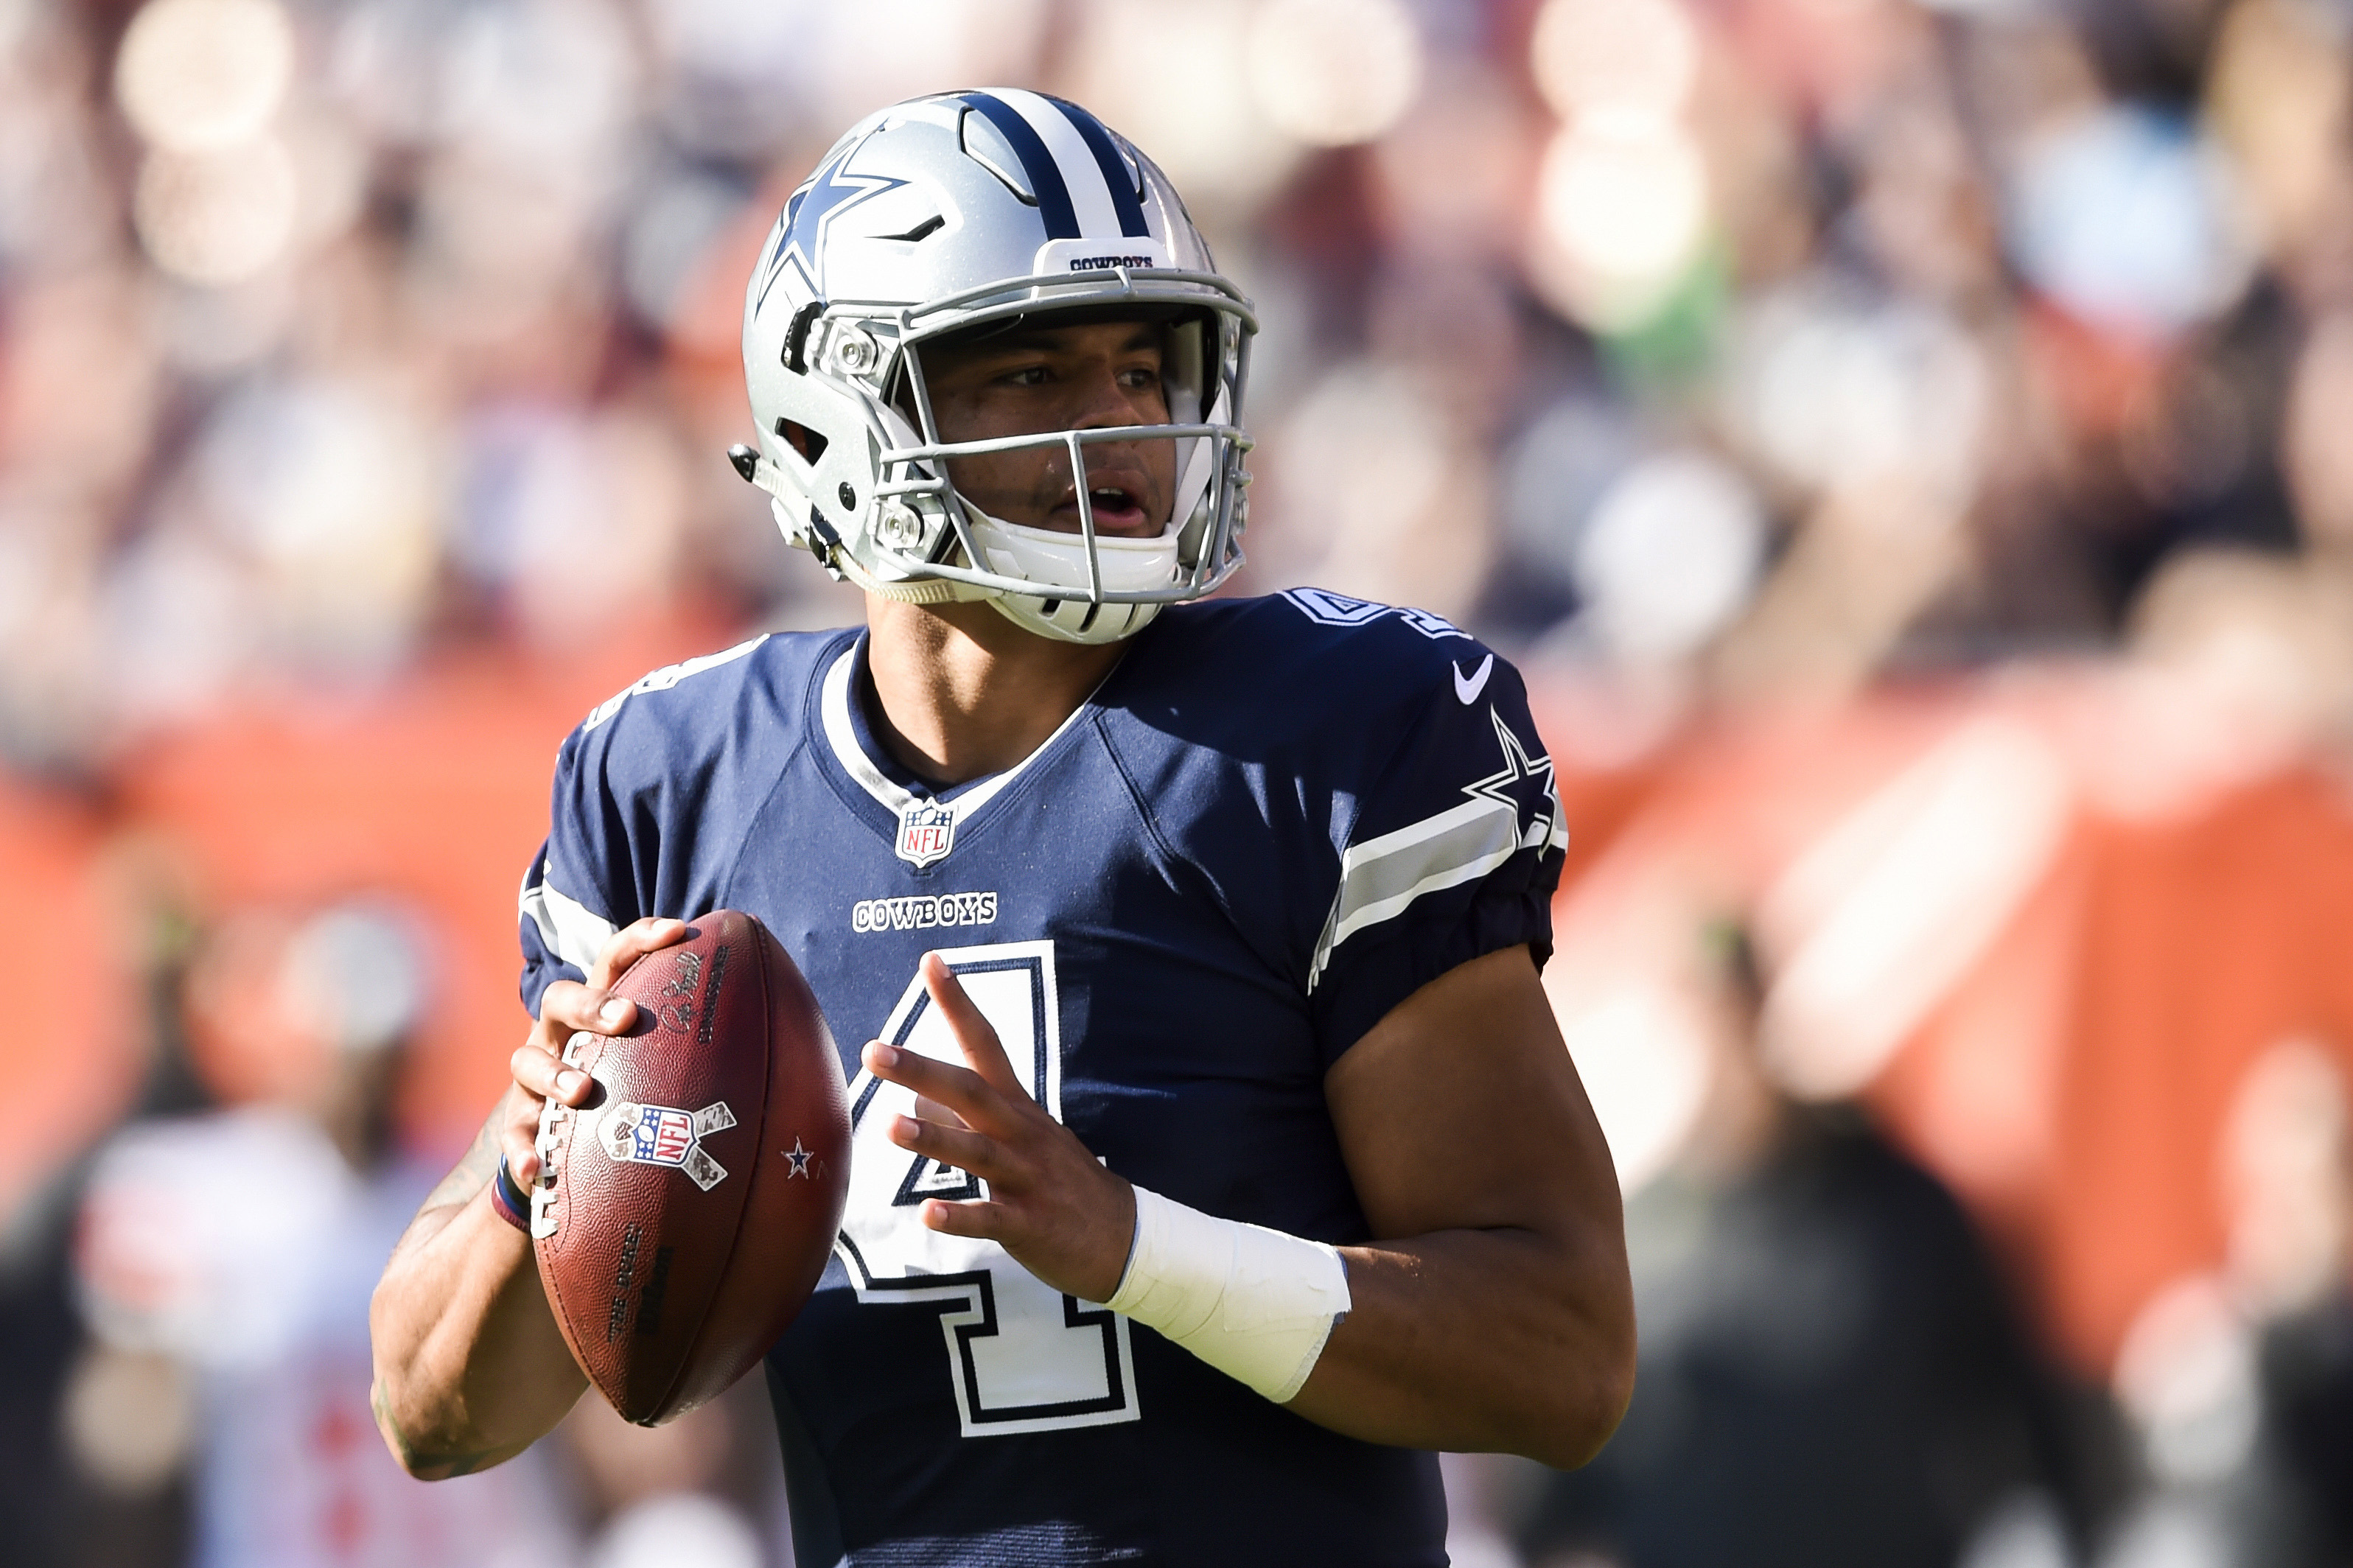 Dallas Cowboys quarterback Dak Prescott looks to pass in the first half of an NFL football game against the Cleveland Browns, Sunday, Nov. 6, 2016, in Cleveland. (AP Photo/David Richard)